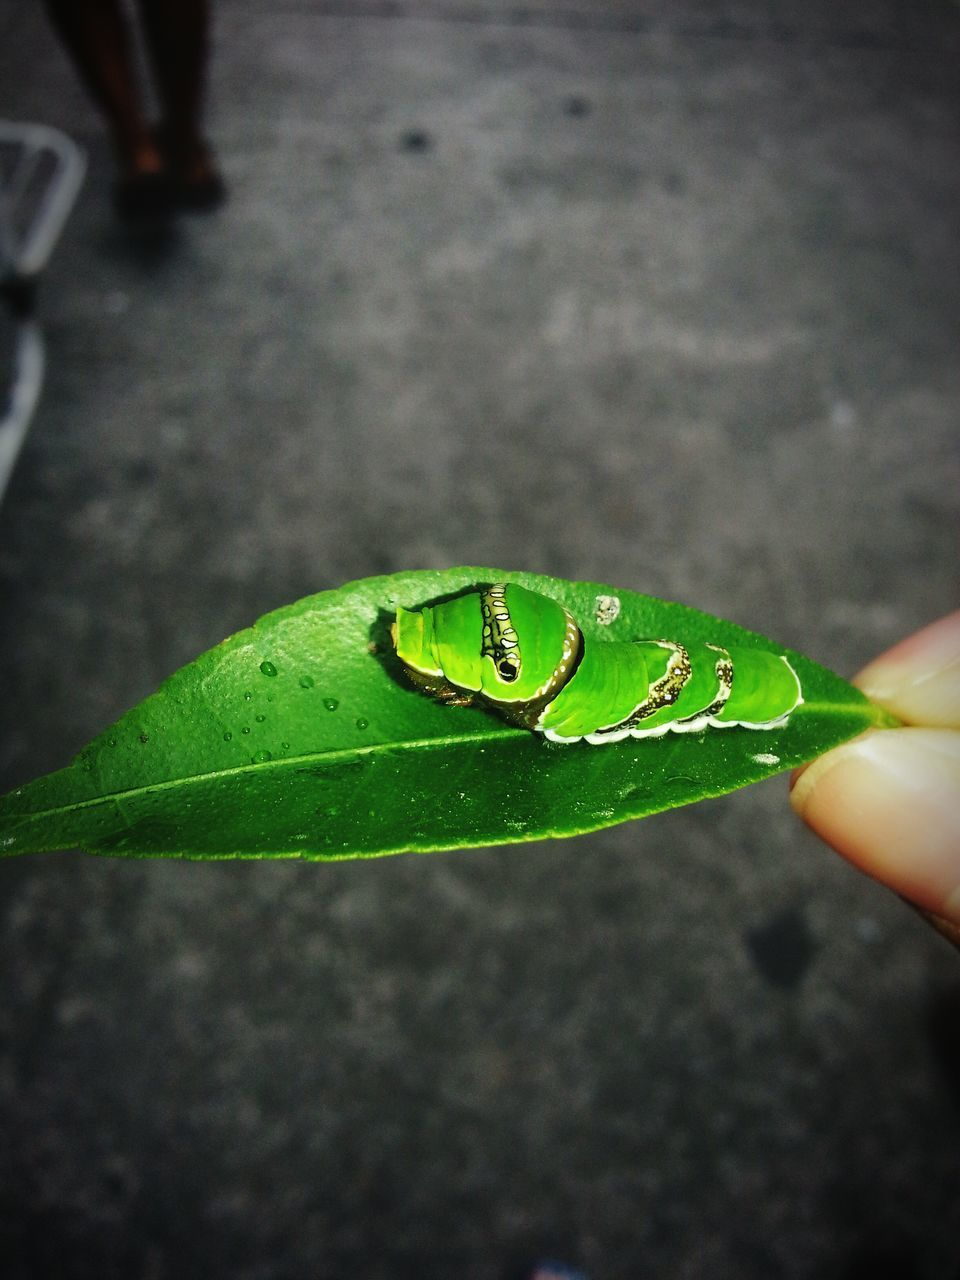 animal themes, animals in the wild, one animal, insect, leaf, close-up, unrecognizable person, human body part, green color, real people, outdoors, day, human hand, nature, one person, animal wildlife, people